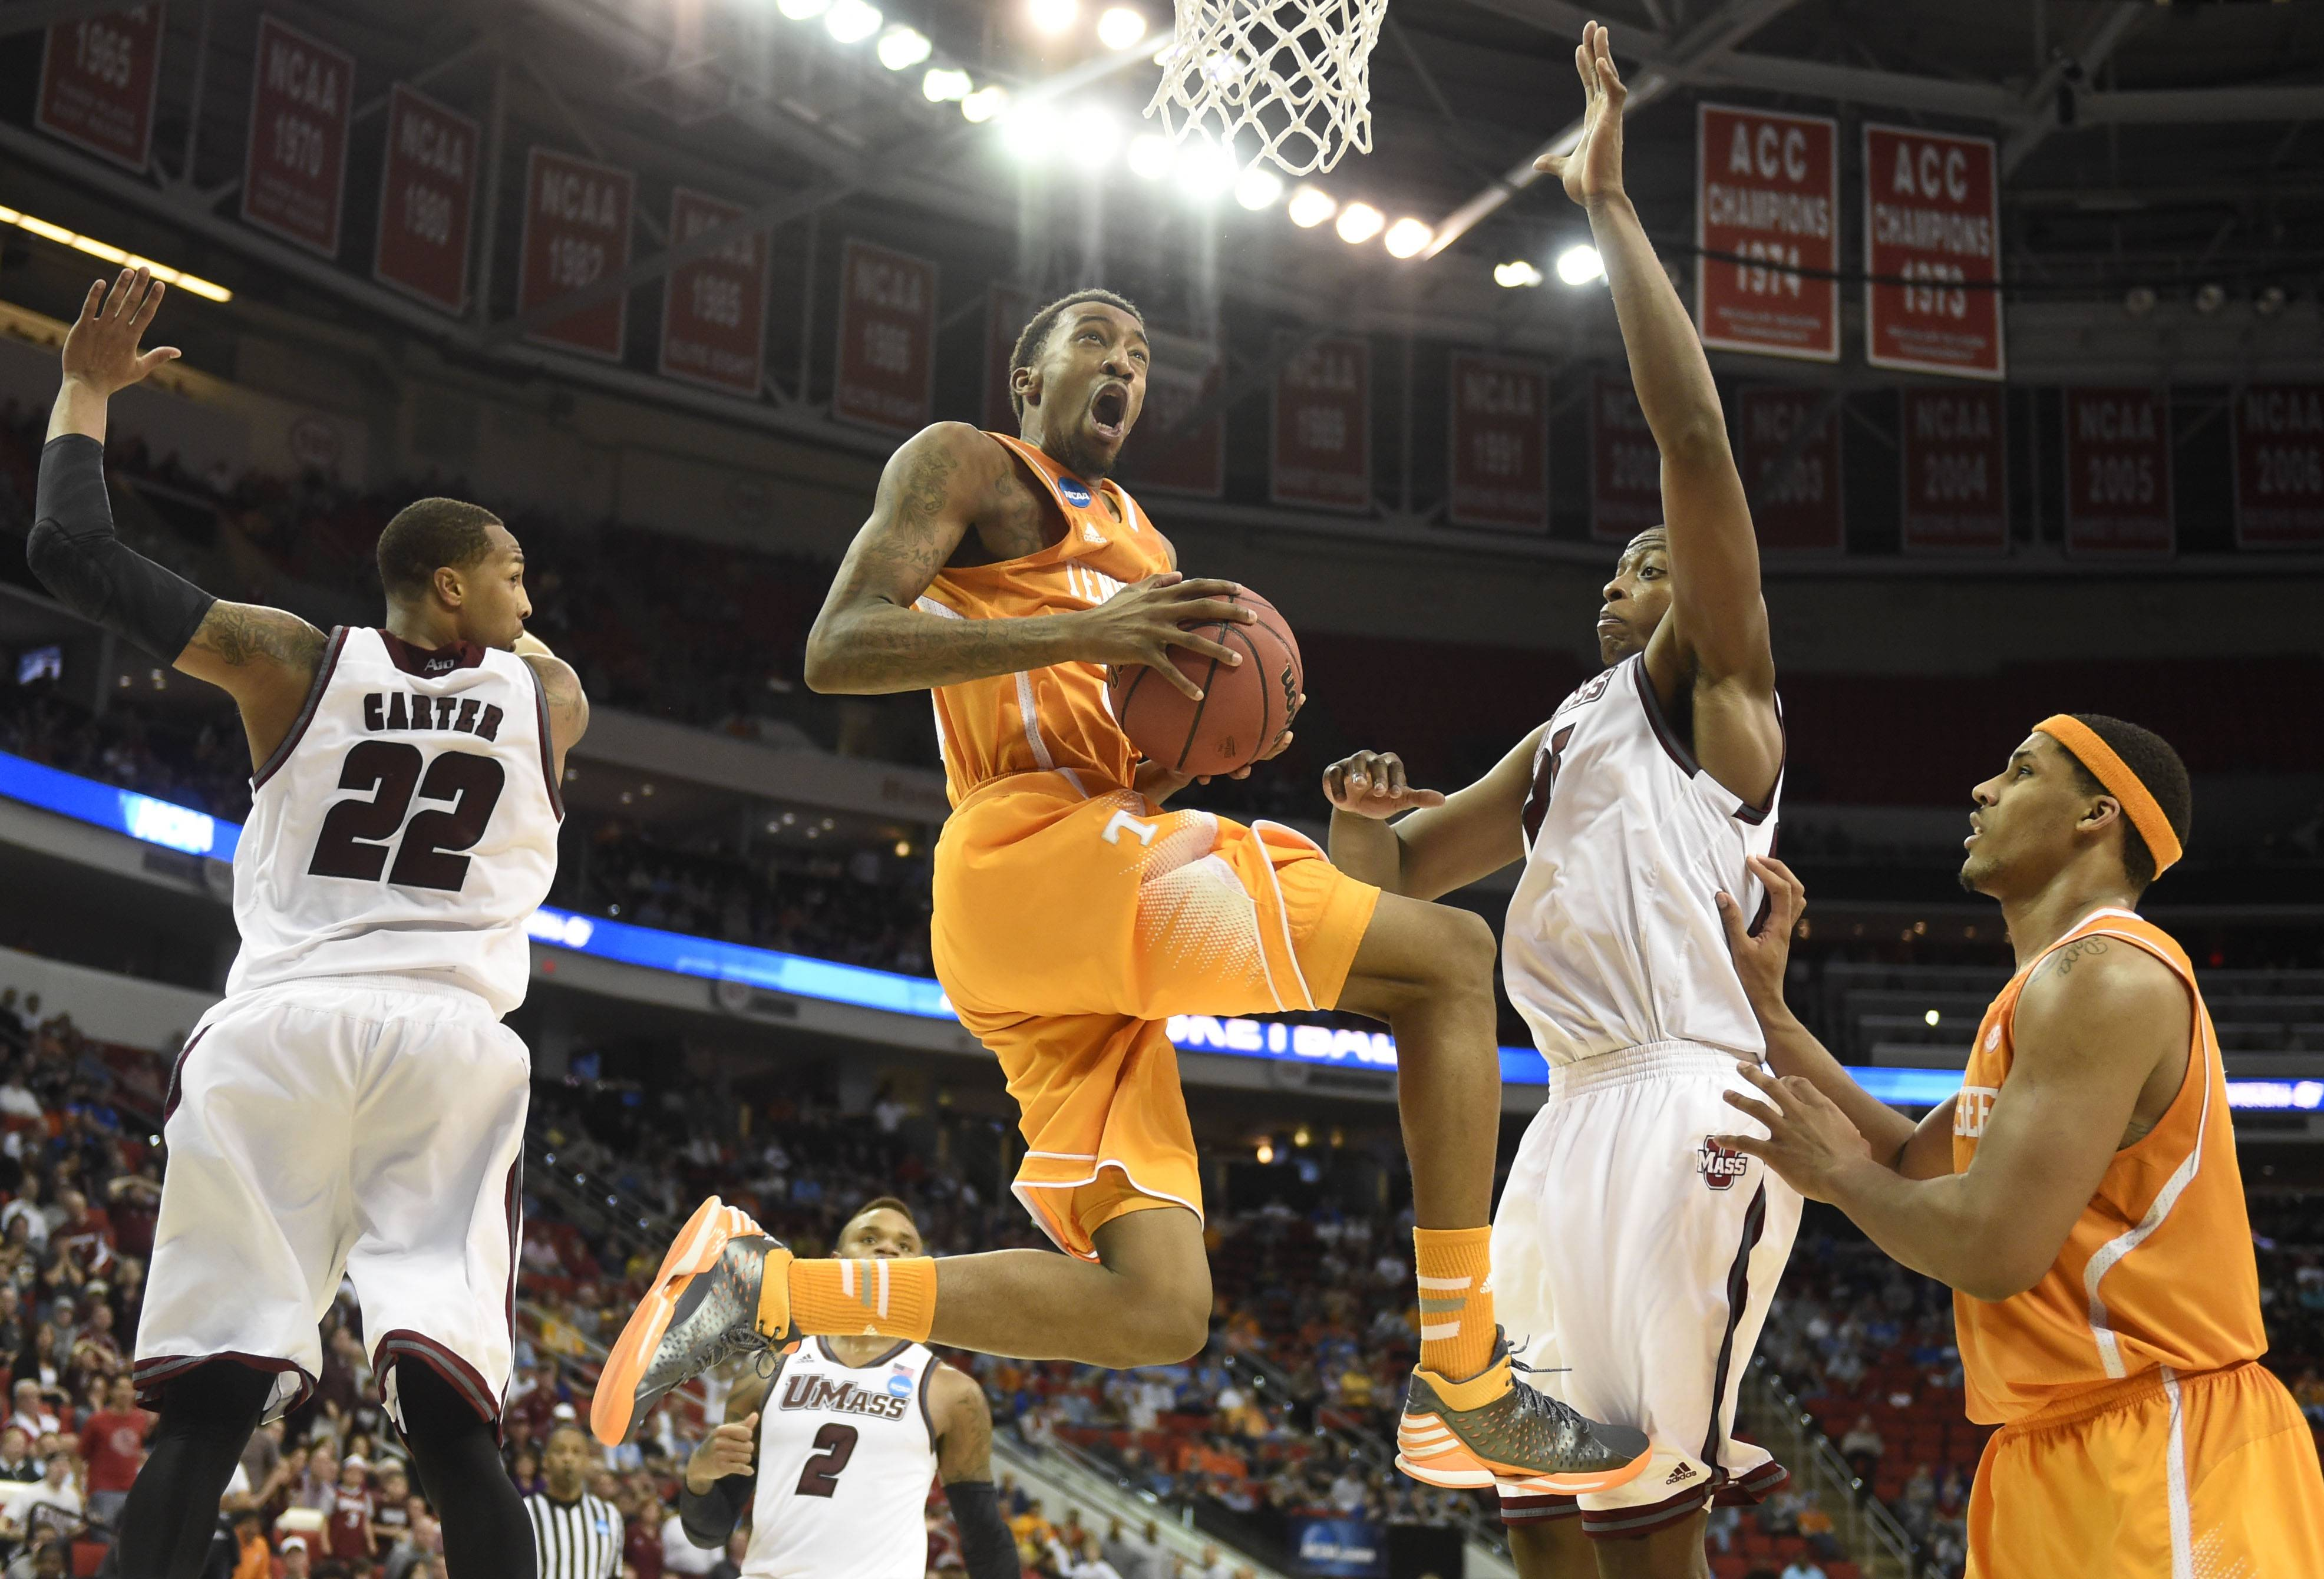 Tennessee guard Jordan McRae (52), center, gets to the hoop in between Massachusetts forward Sampson Carter (22) and Massachusetts center Cady Lalanne (25), while Tennessee forward Jarnell Stokes, right, looks on during the second half of an NCAA college basketball tournament game at the PNC Arena in Raleigh, N.C. on Friday, March 21, 2014. Tennessee won 86-67.